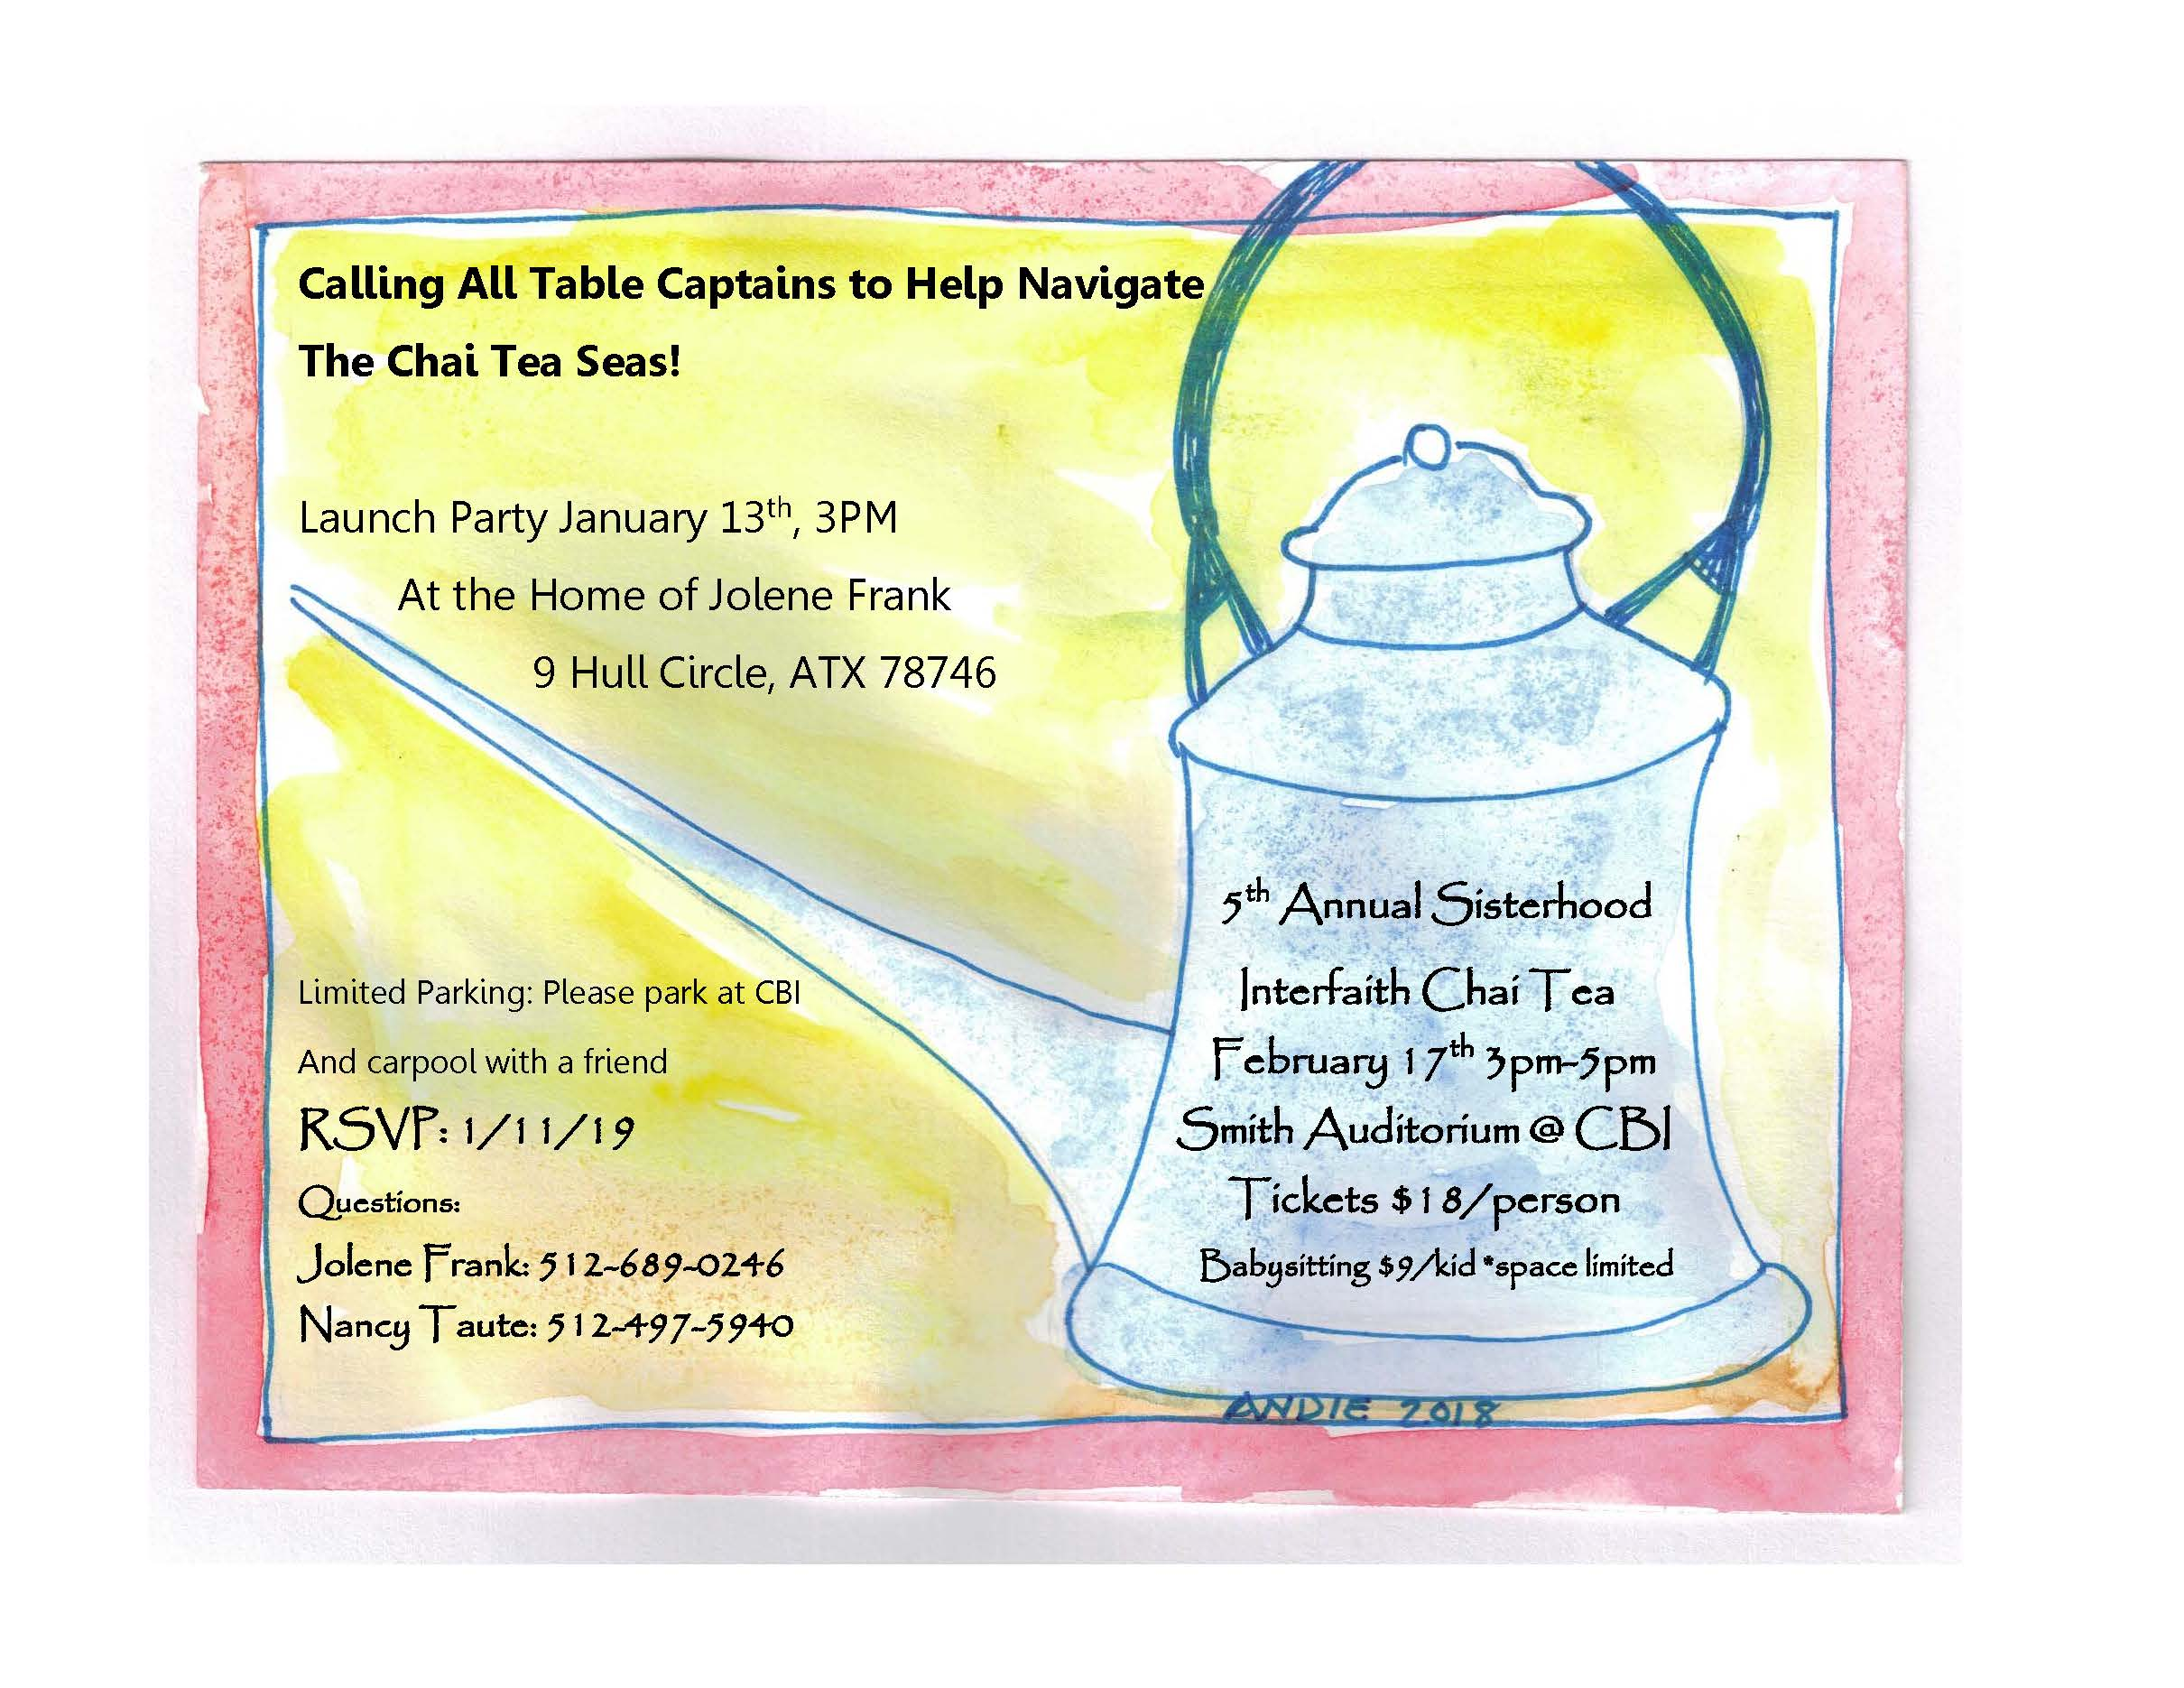 Calling All Table Captains! - Please click on the form above to sign up as a table captain for our 5th Annual Interfaith Chai Tea Event!Remember to come to our Launch Party at the Home of Jolene Frank on Sunday, January 13th, 3pm!RSVP by 1/11/19!